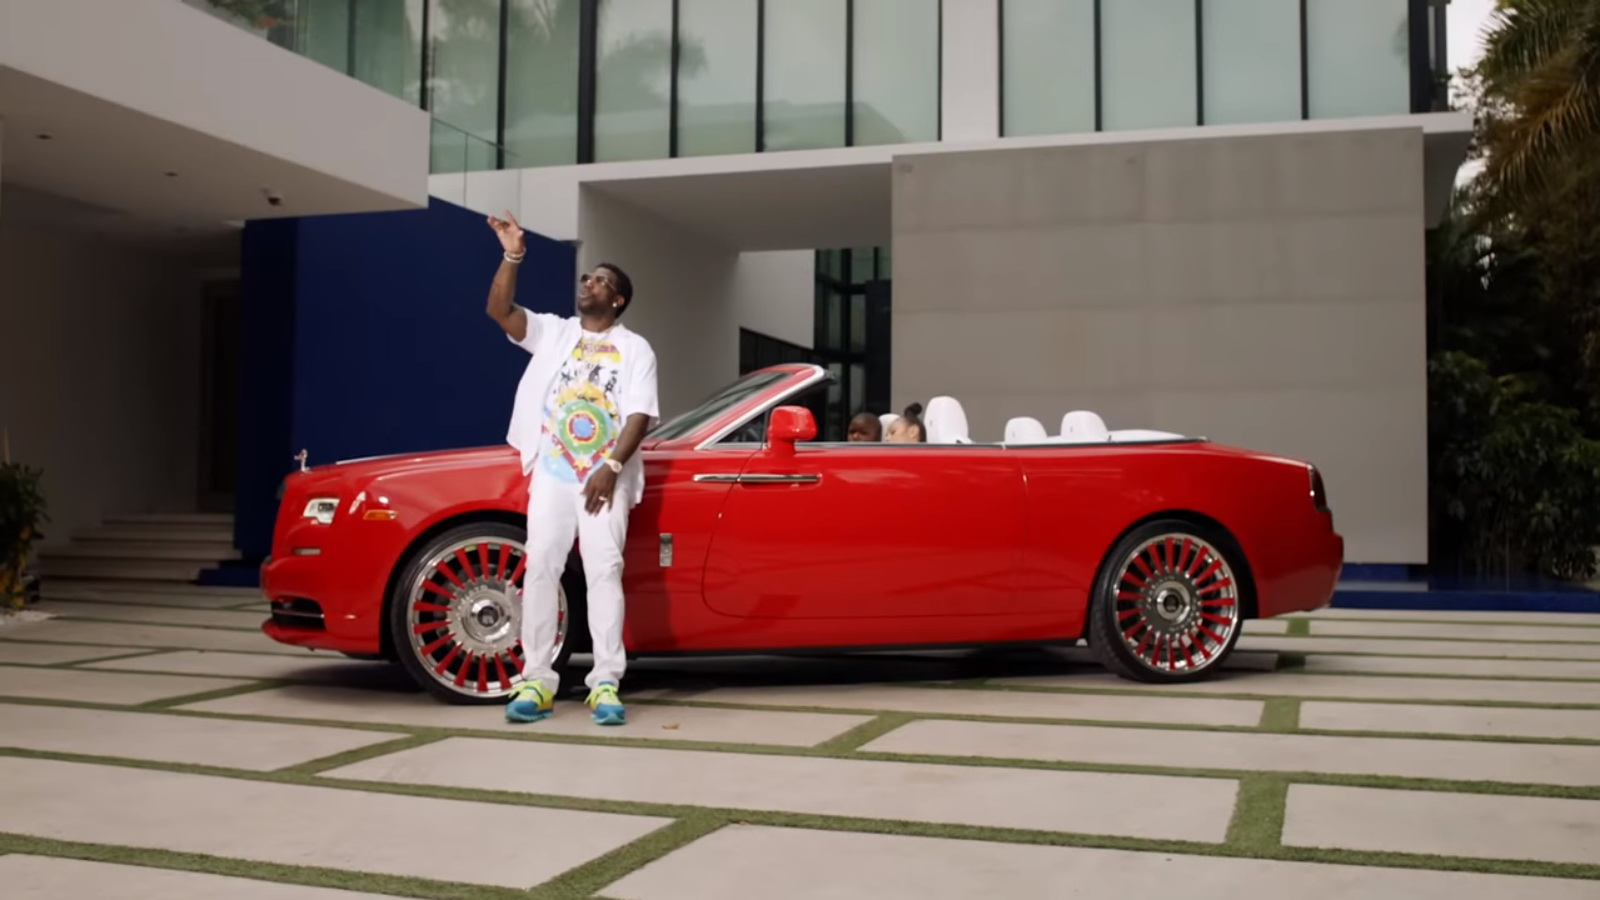 Rolls-Royce Dawn - Migos – Slippery feat. Gucci Mane Music Video  Product Placement Review